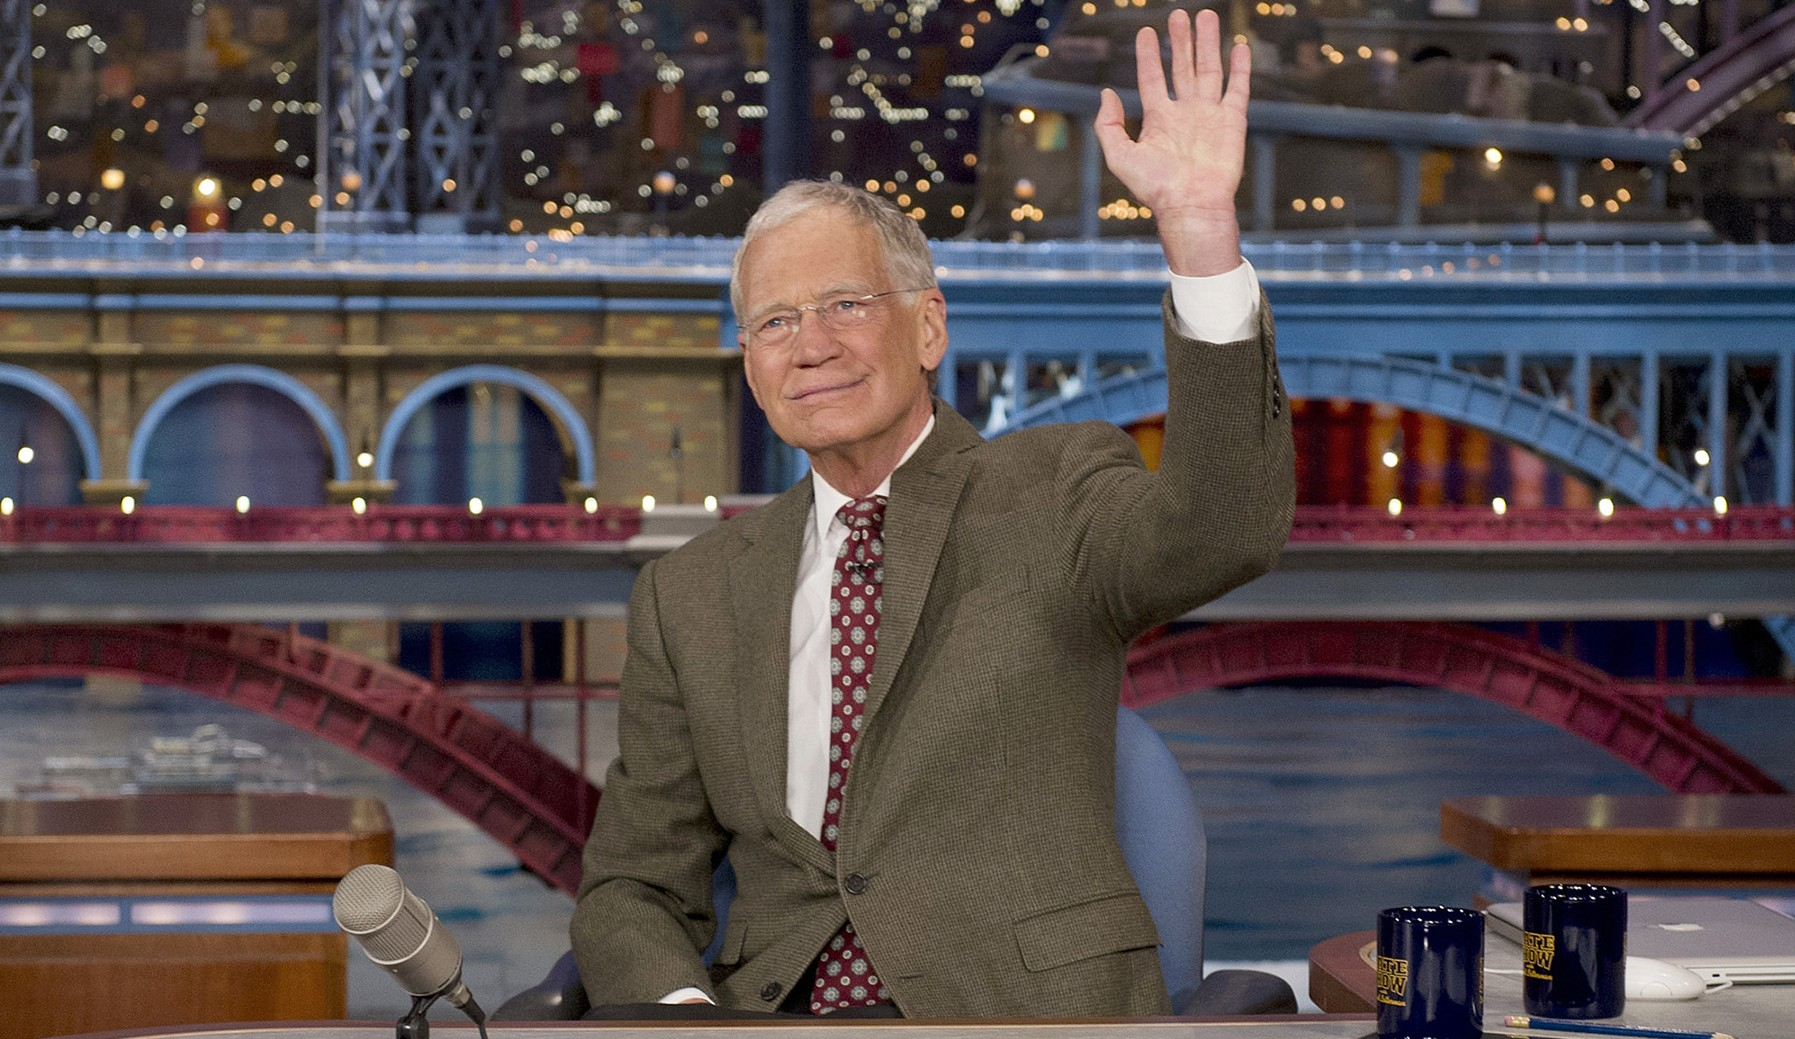 """After more than 33 years as a staple on late-night television, David Letterman's final """"Late Show"""" will air at 11:35 Wednesday night on CBS.  CBS Broadcasting Inc."""